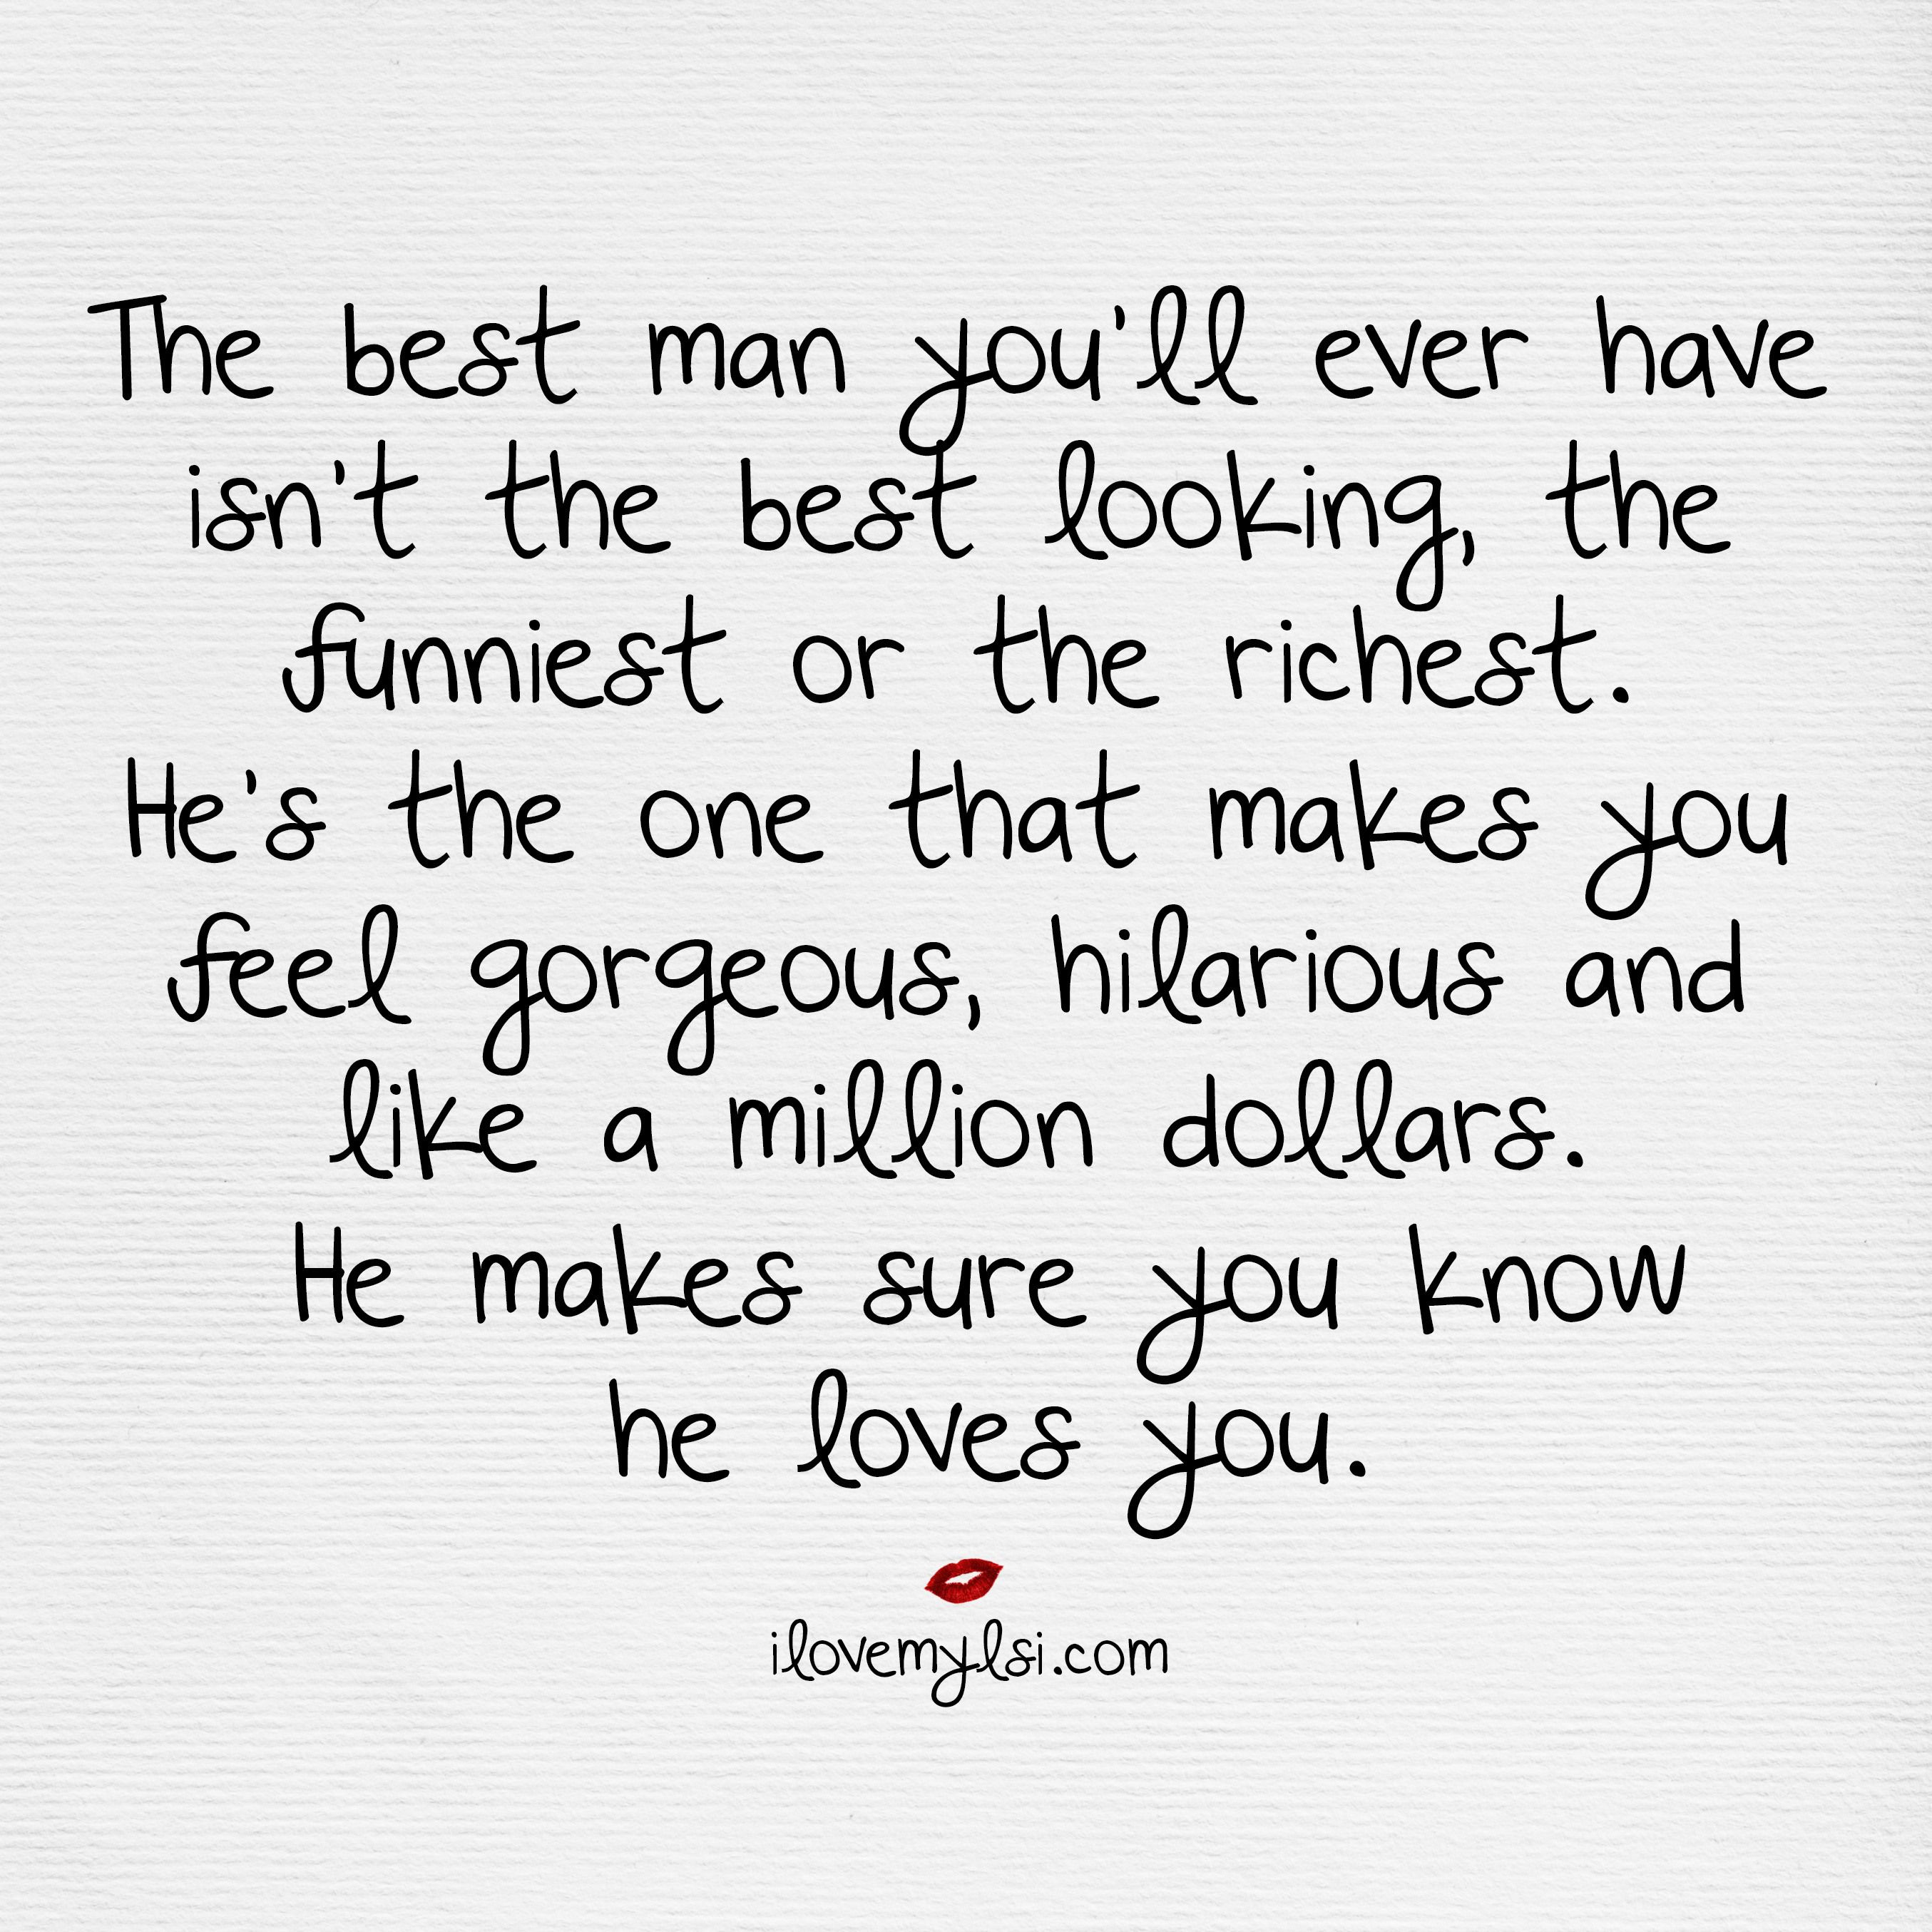 Love The One That Loves You Quotes The Best Man You'll Ever Have  Hilarious Relationships And Thoughts